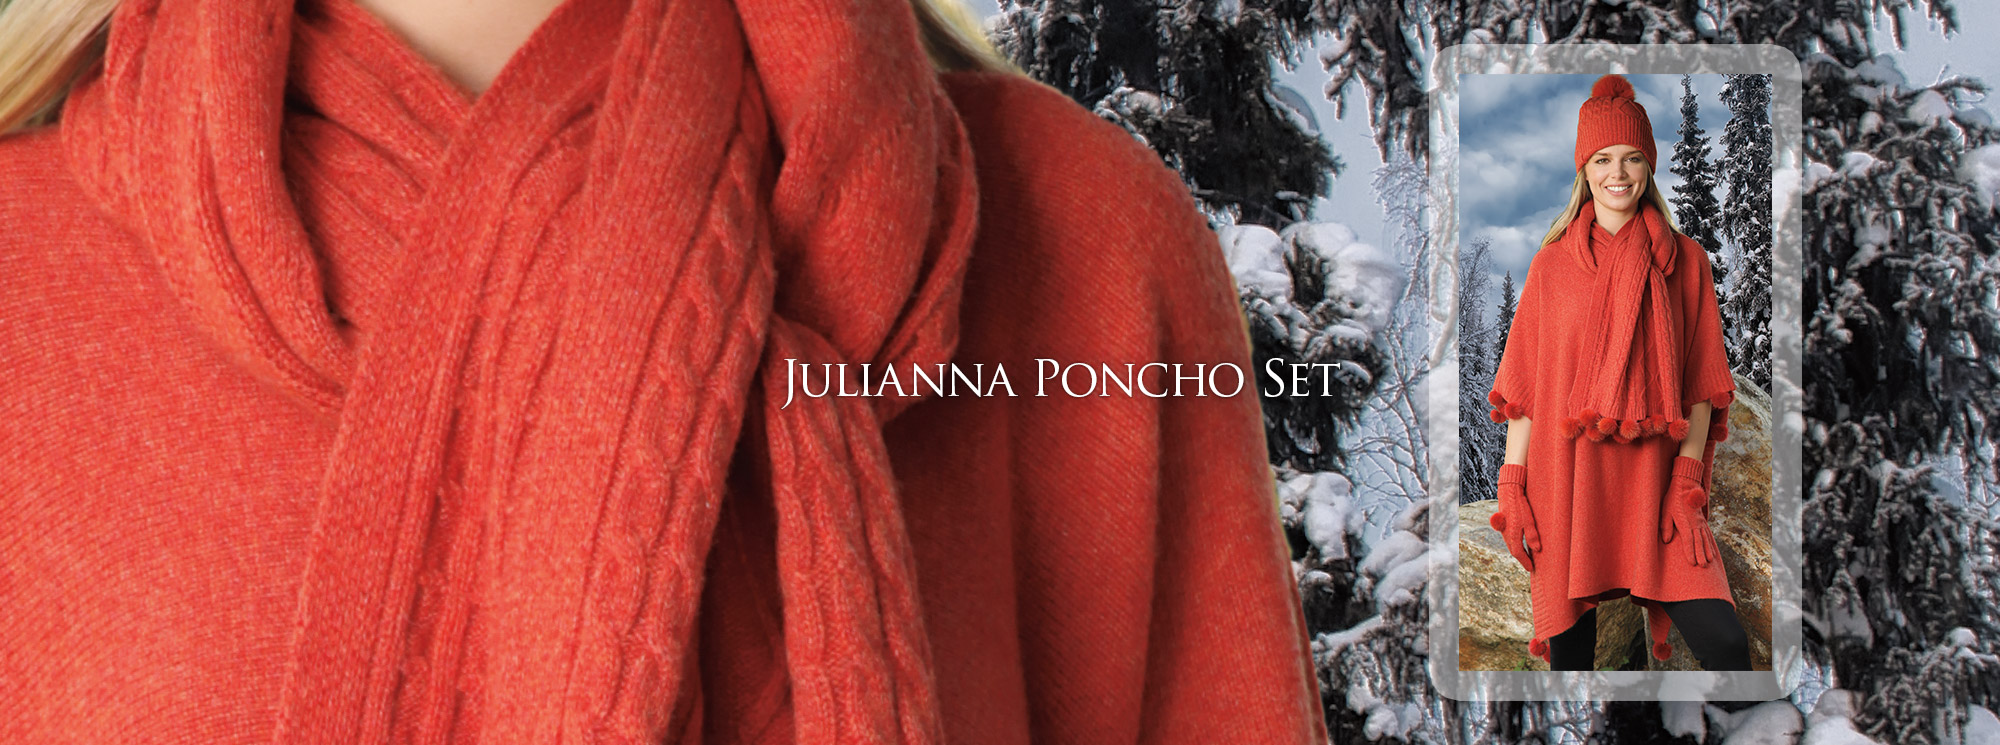 Julianna Poncho Set